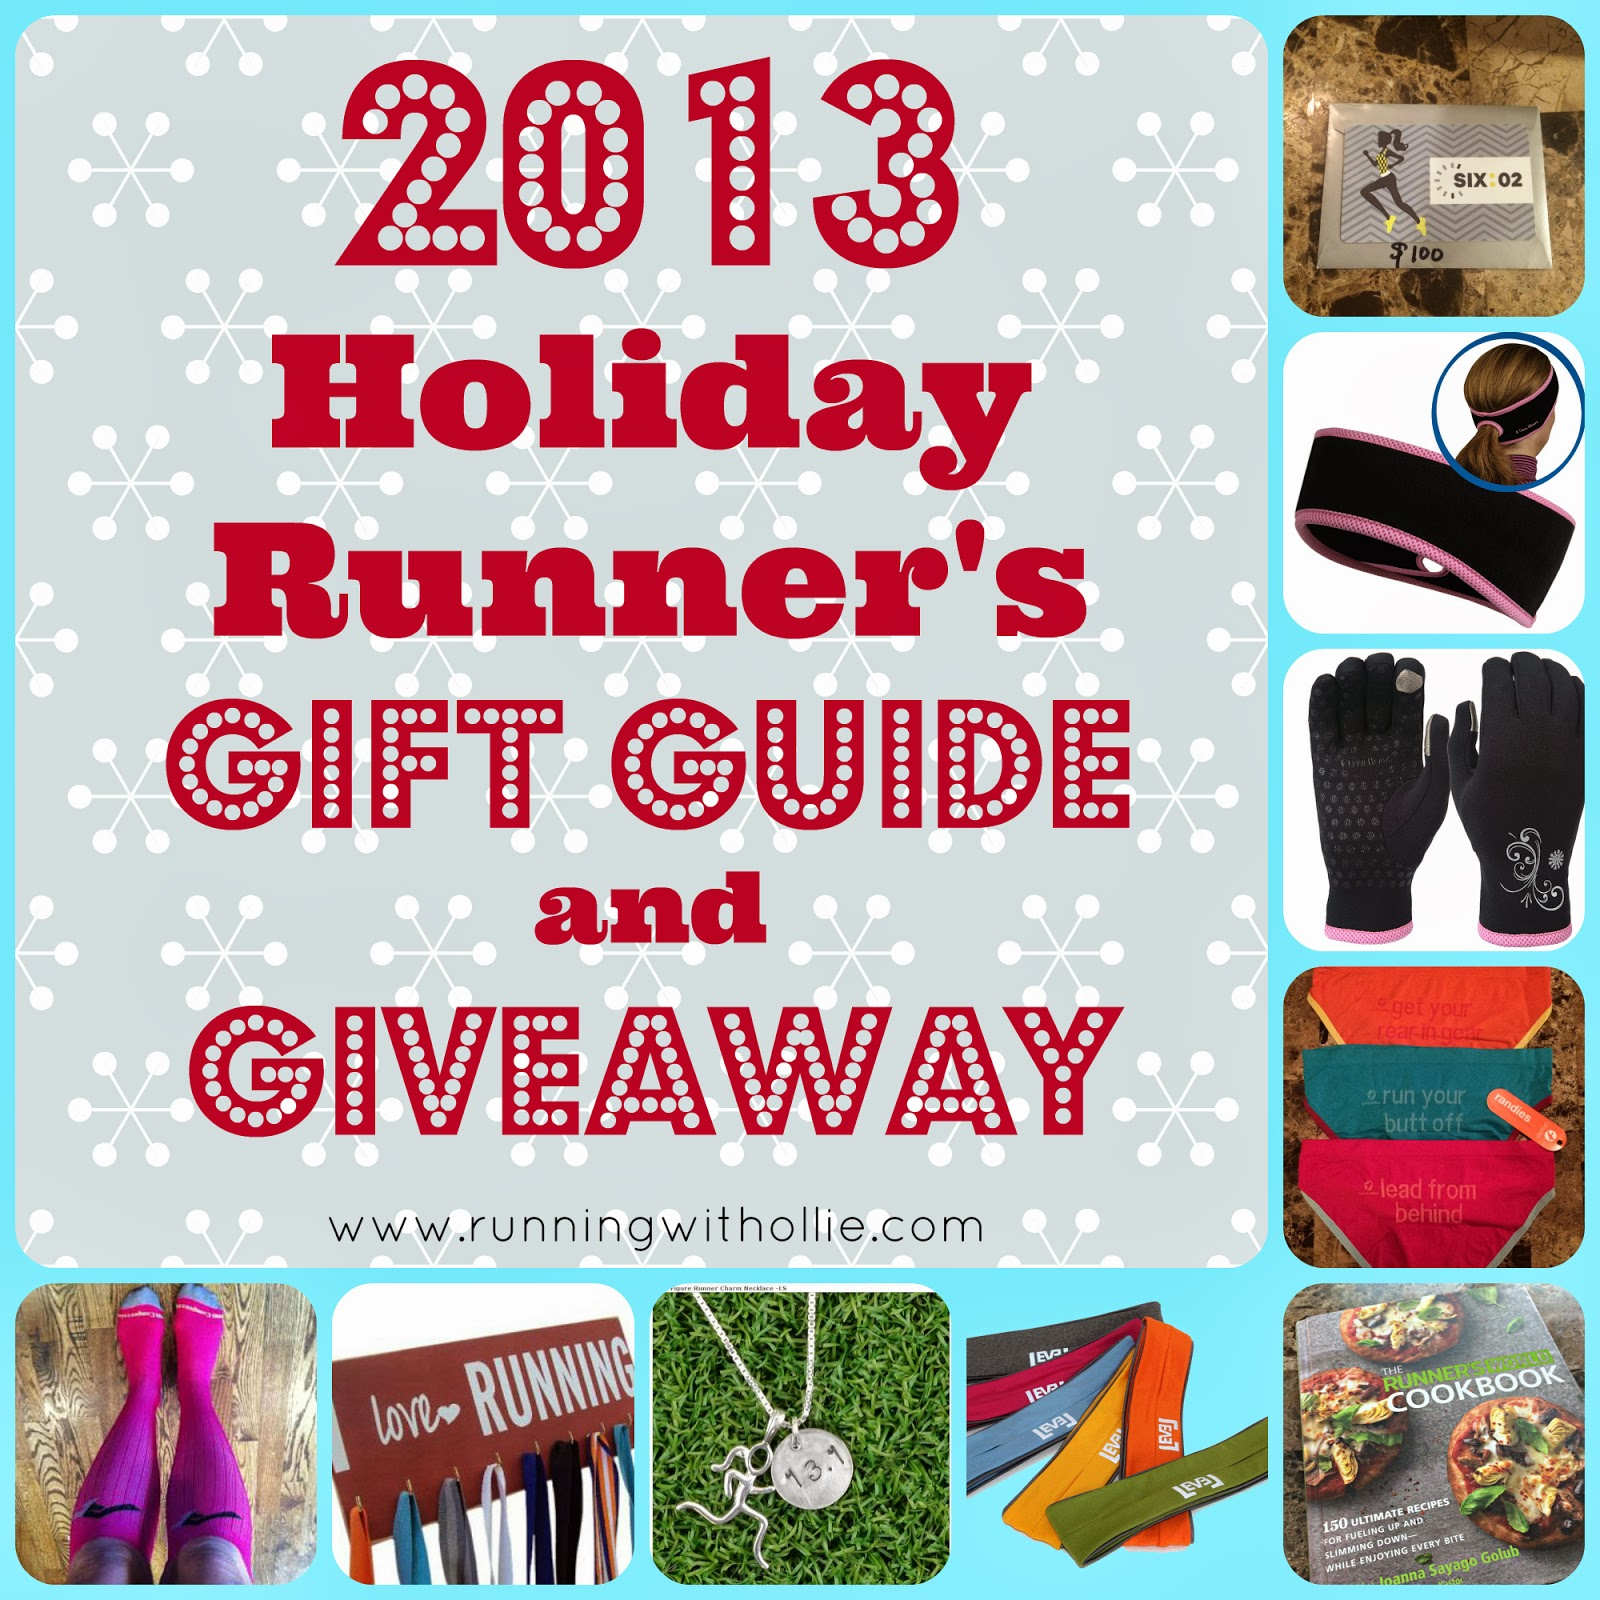 Christmas Gifts For Runners: RUNNING WITH OLLIE: 2013 Holiday Runner's Gift Guide And